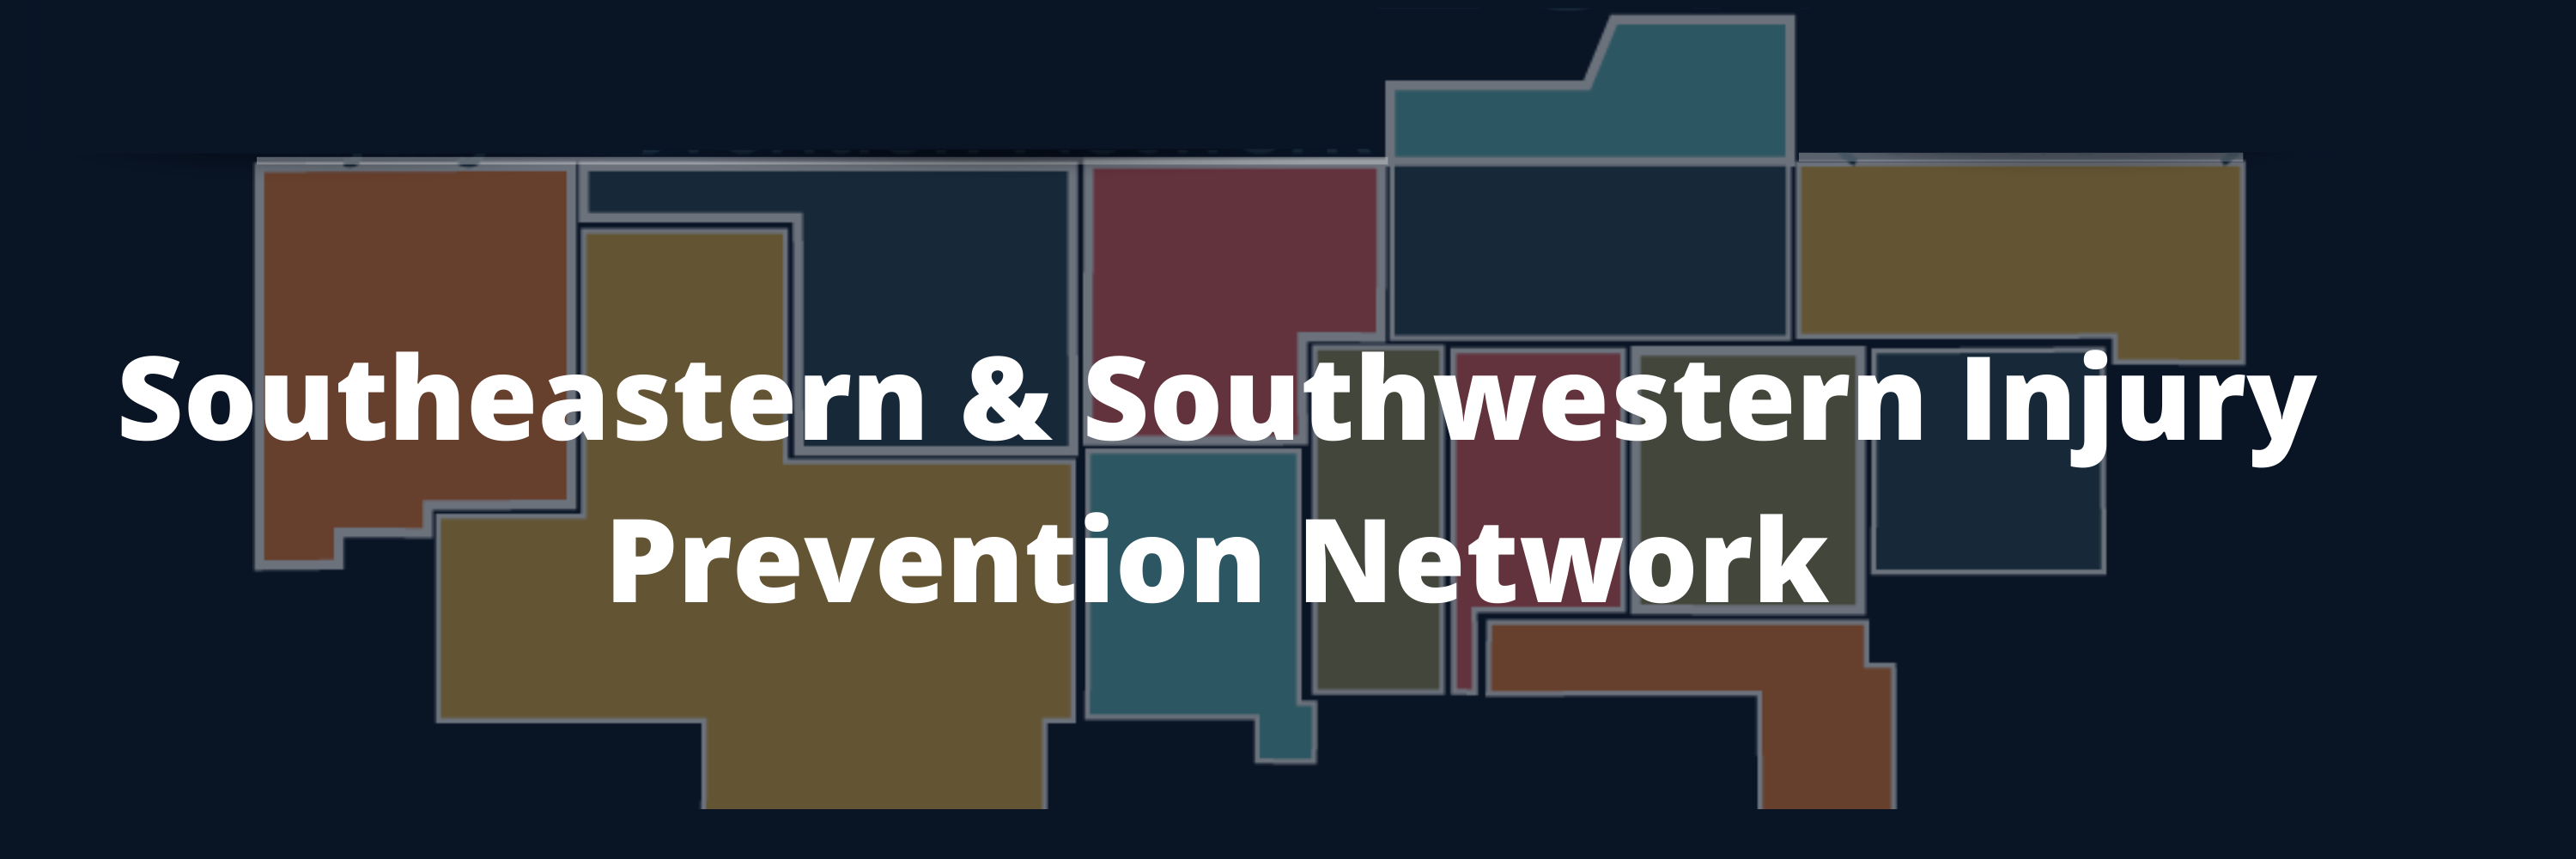 Southeastern and Southwestern Injury Prevention Network